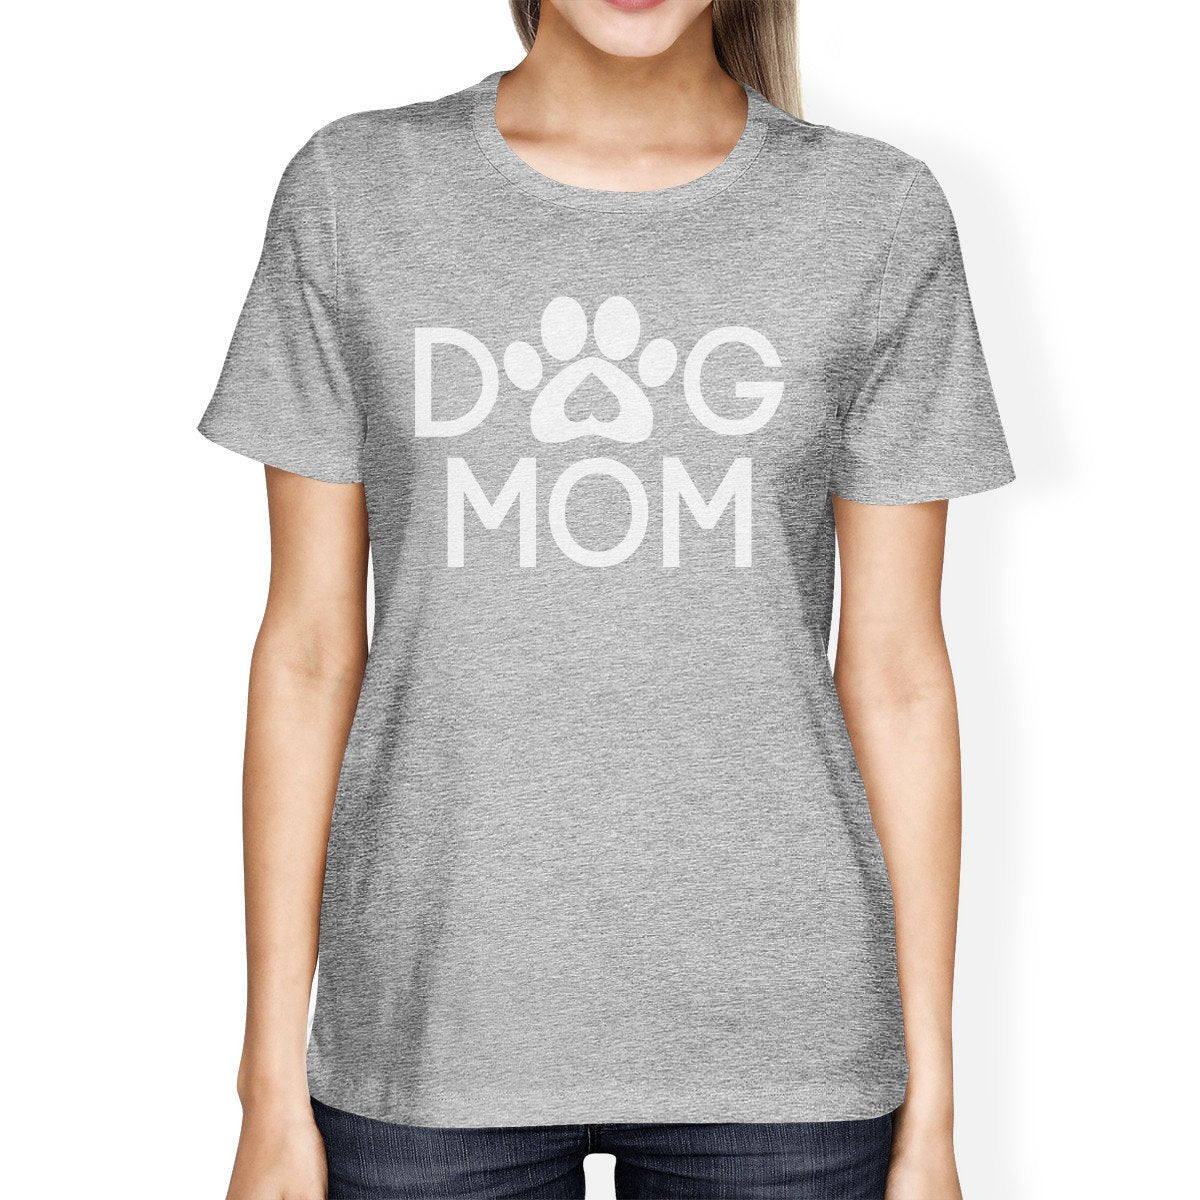 Dog Mom Womens Gray Unique Design Short Sleeve Tee For Dog Moms